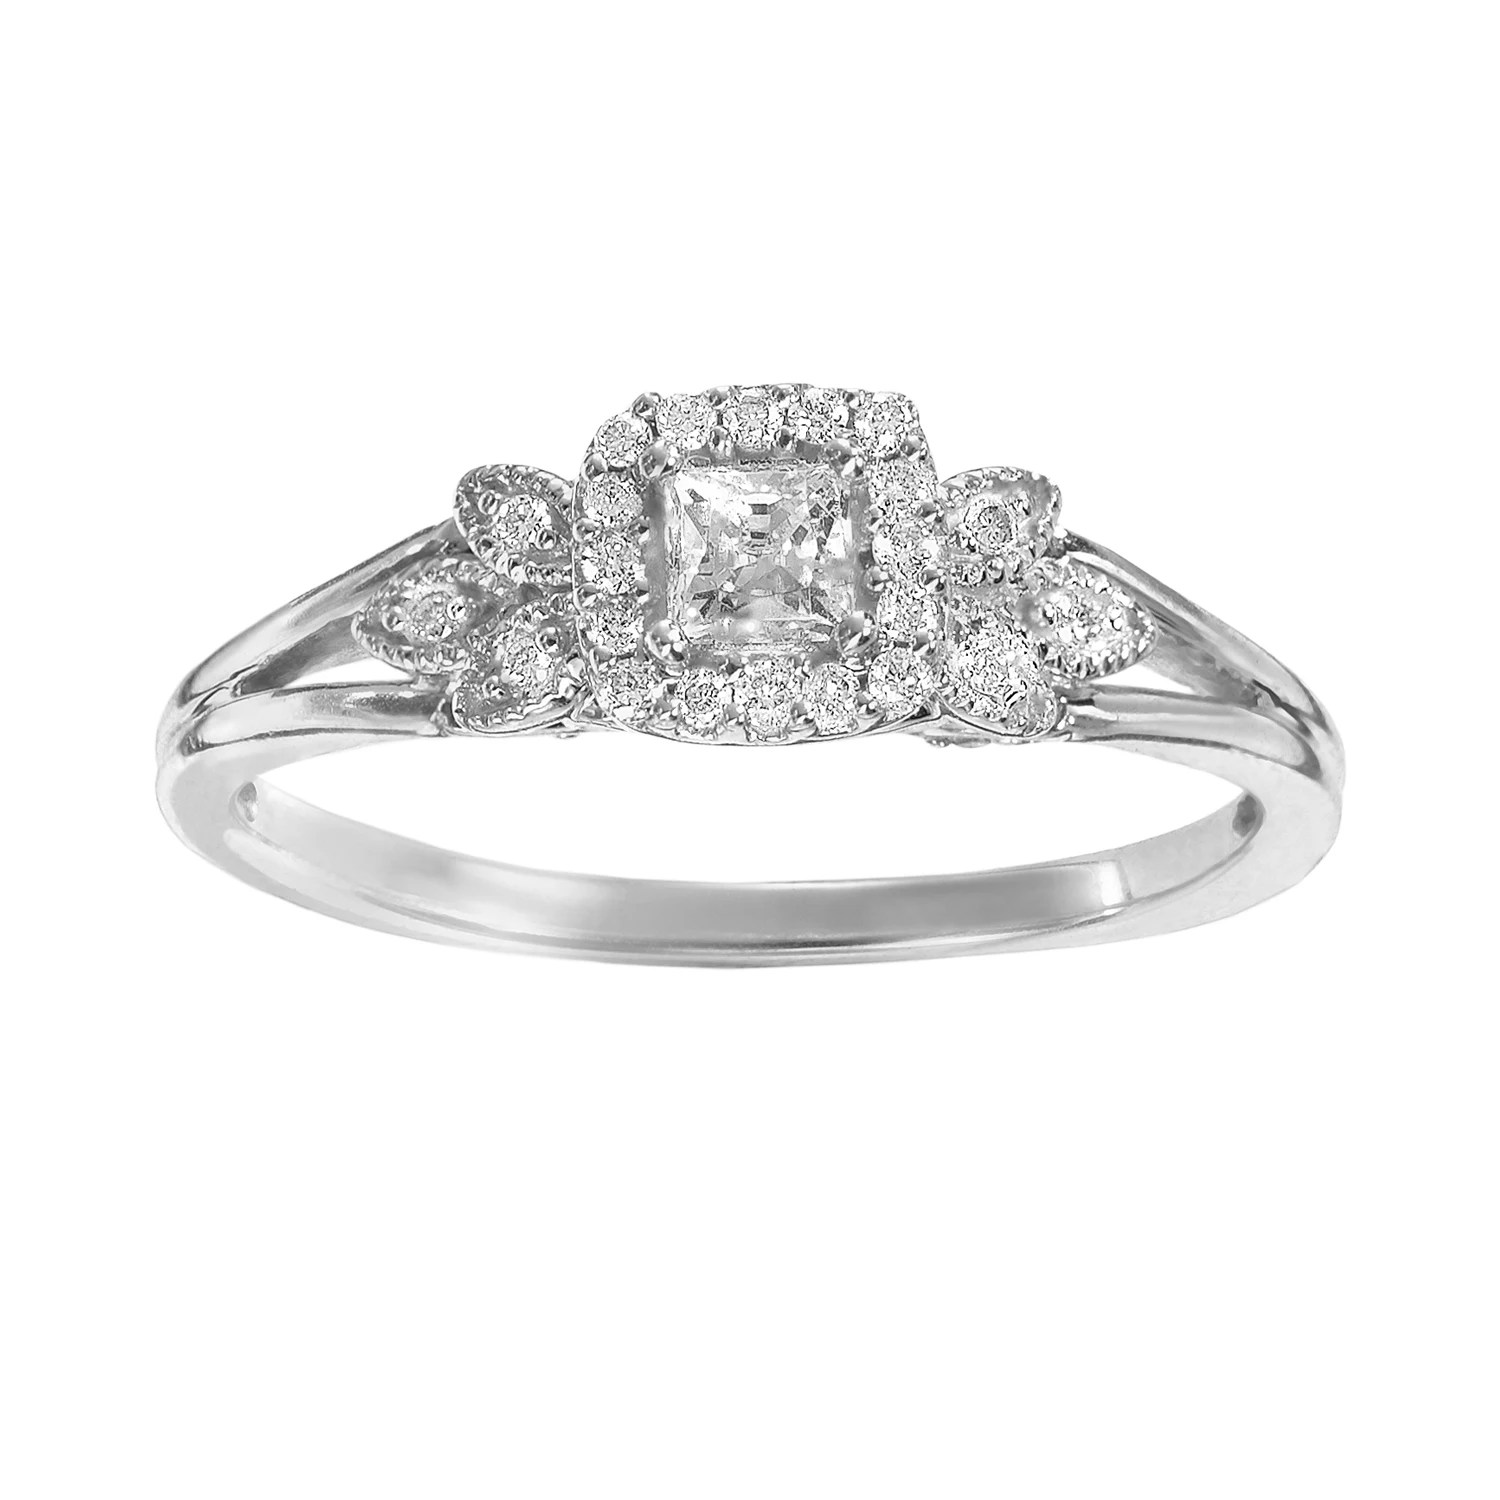 simply vera vera wang diamond leaf halo engagement ring in 14k white gold 14 ct tw halo wedding ring Simply Vera Vera Wang Diamond Leaf Halo Engagement Ring in 14k White Gold 1 4 ct T W